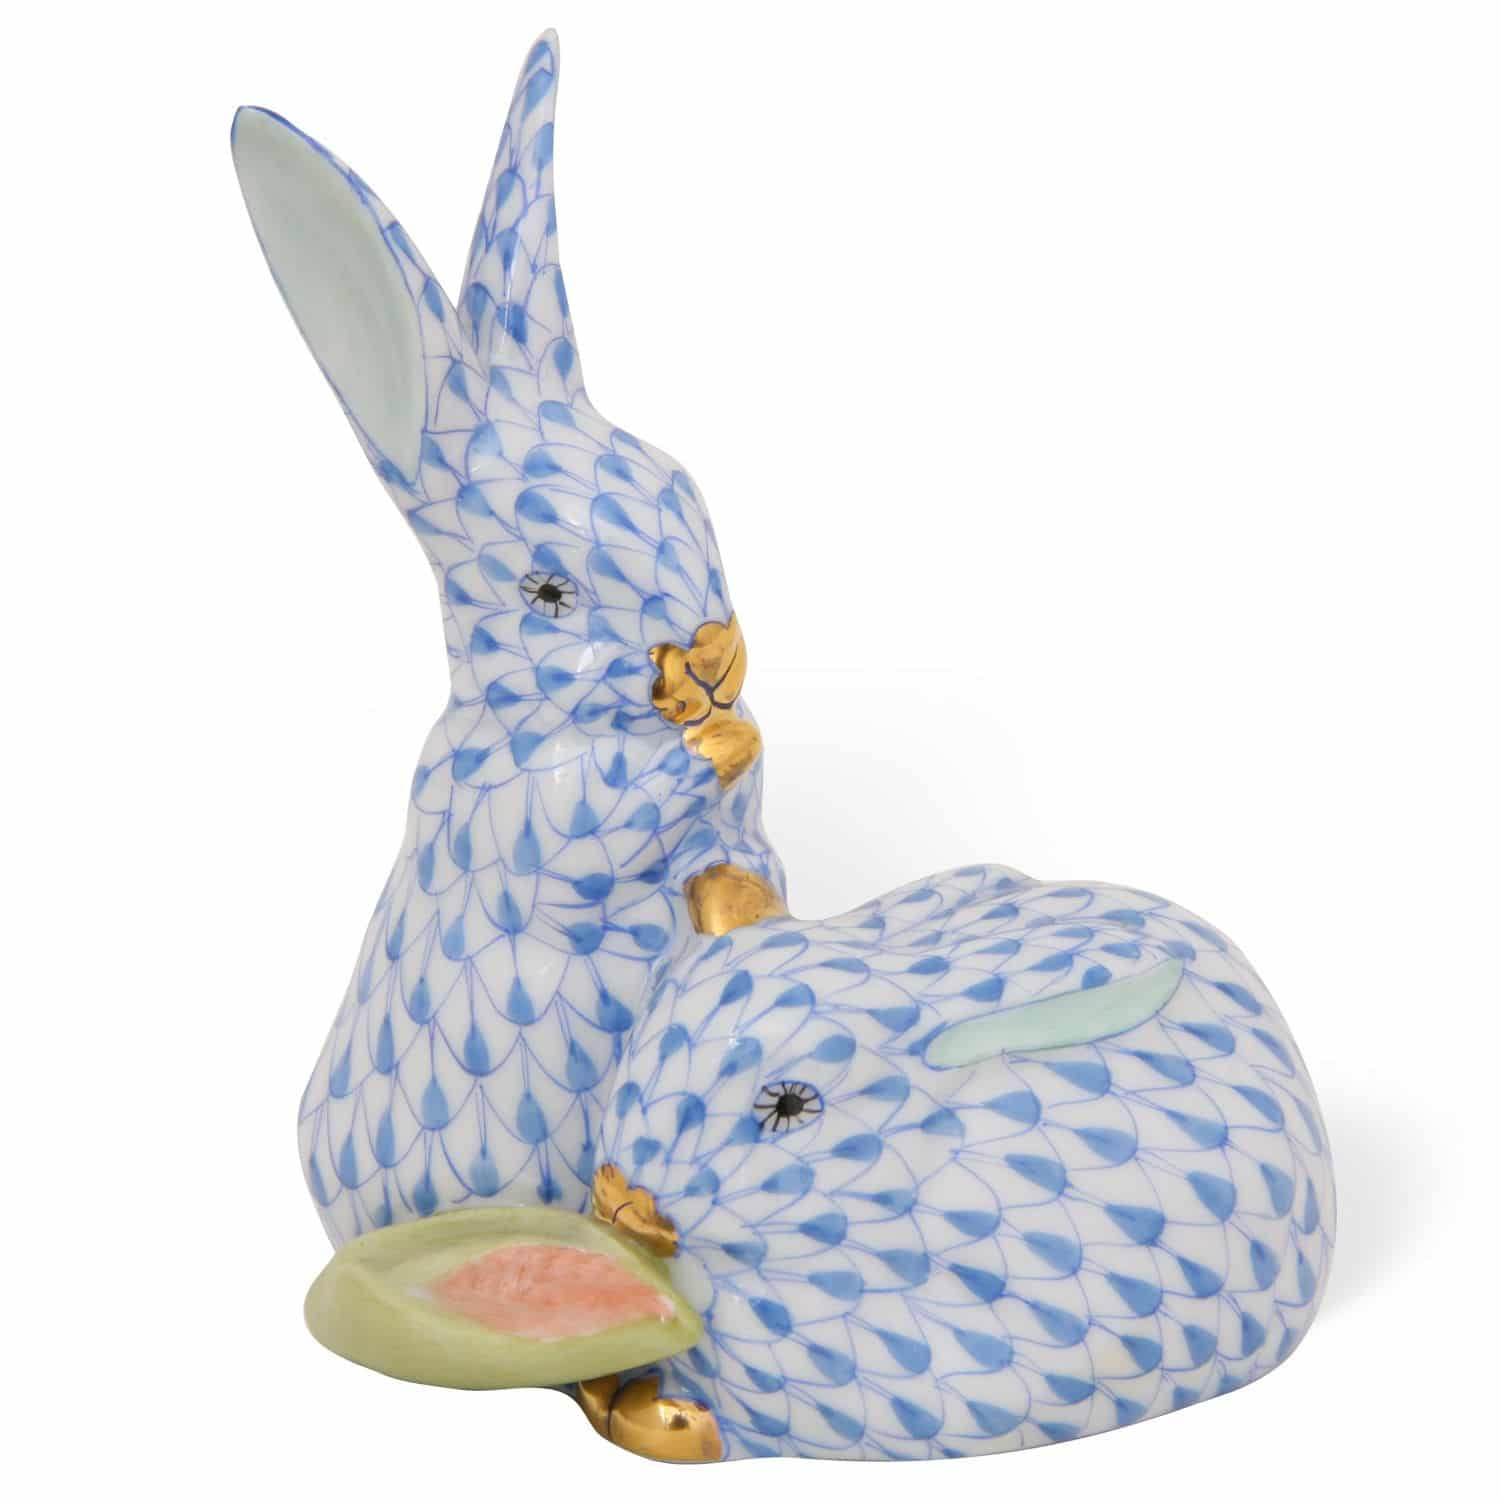 Herend-Porcelain-Bunny-Animal-Figurine